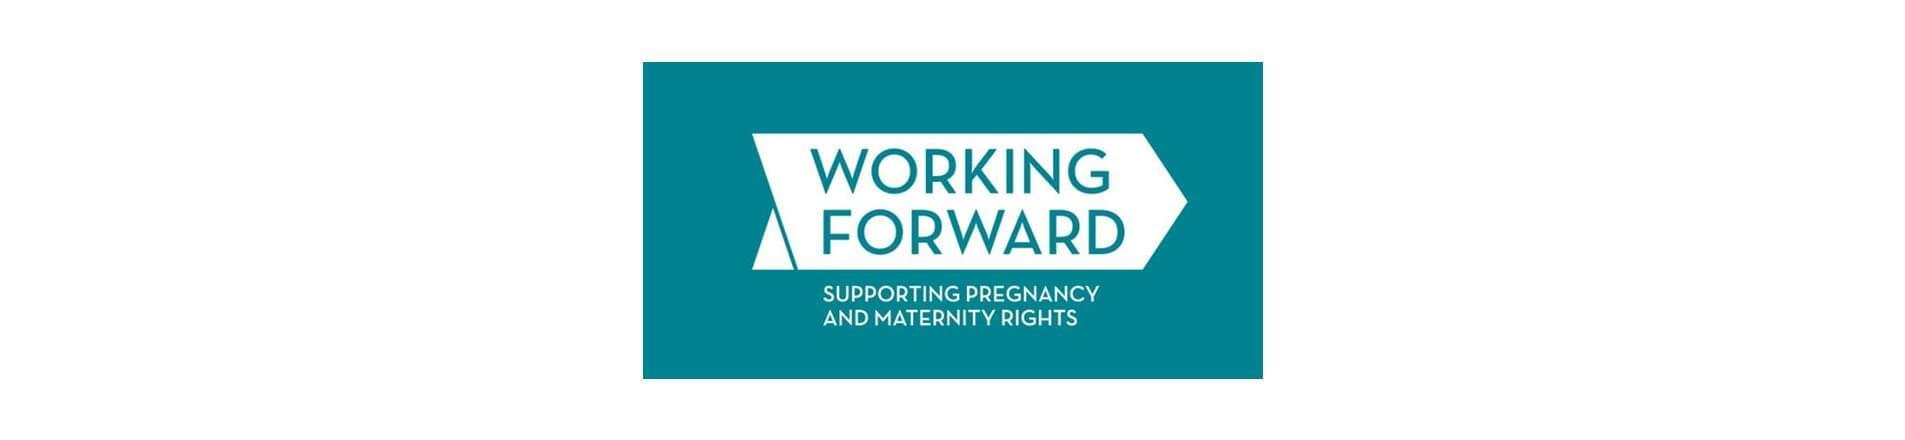 Working Forward Supporting Pregnancy and Maternity Rights Logo